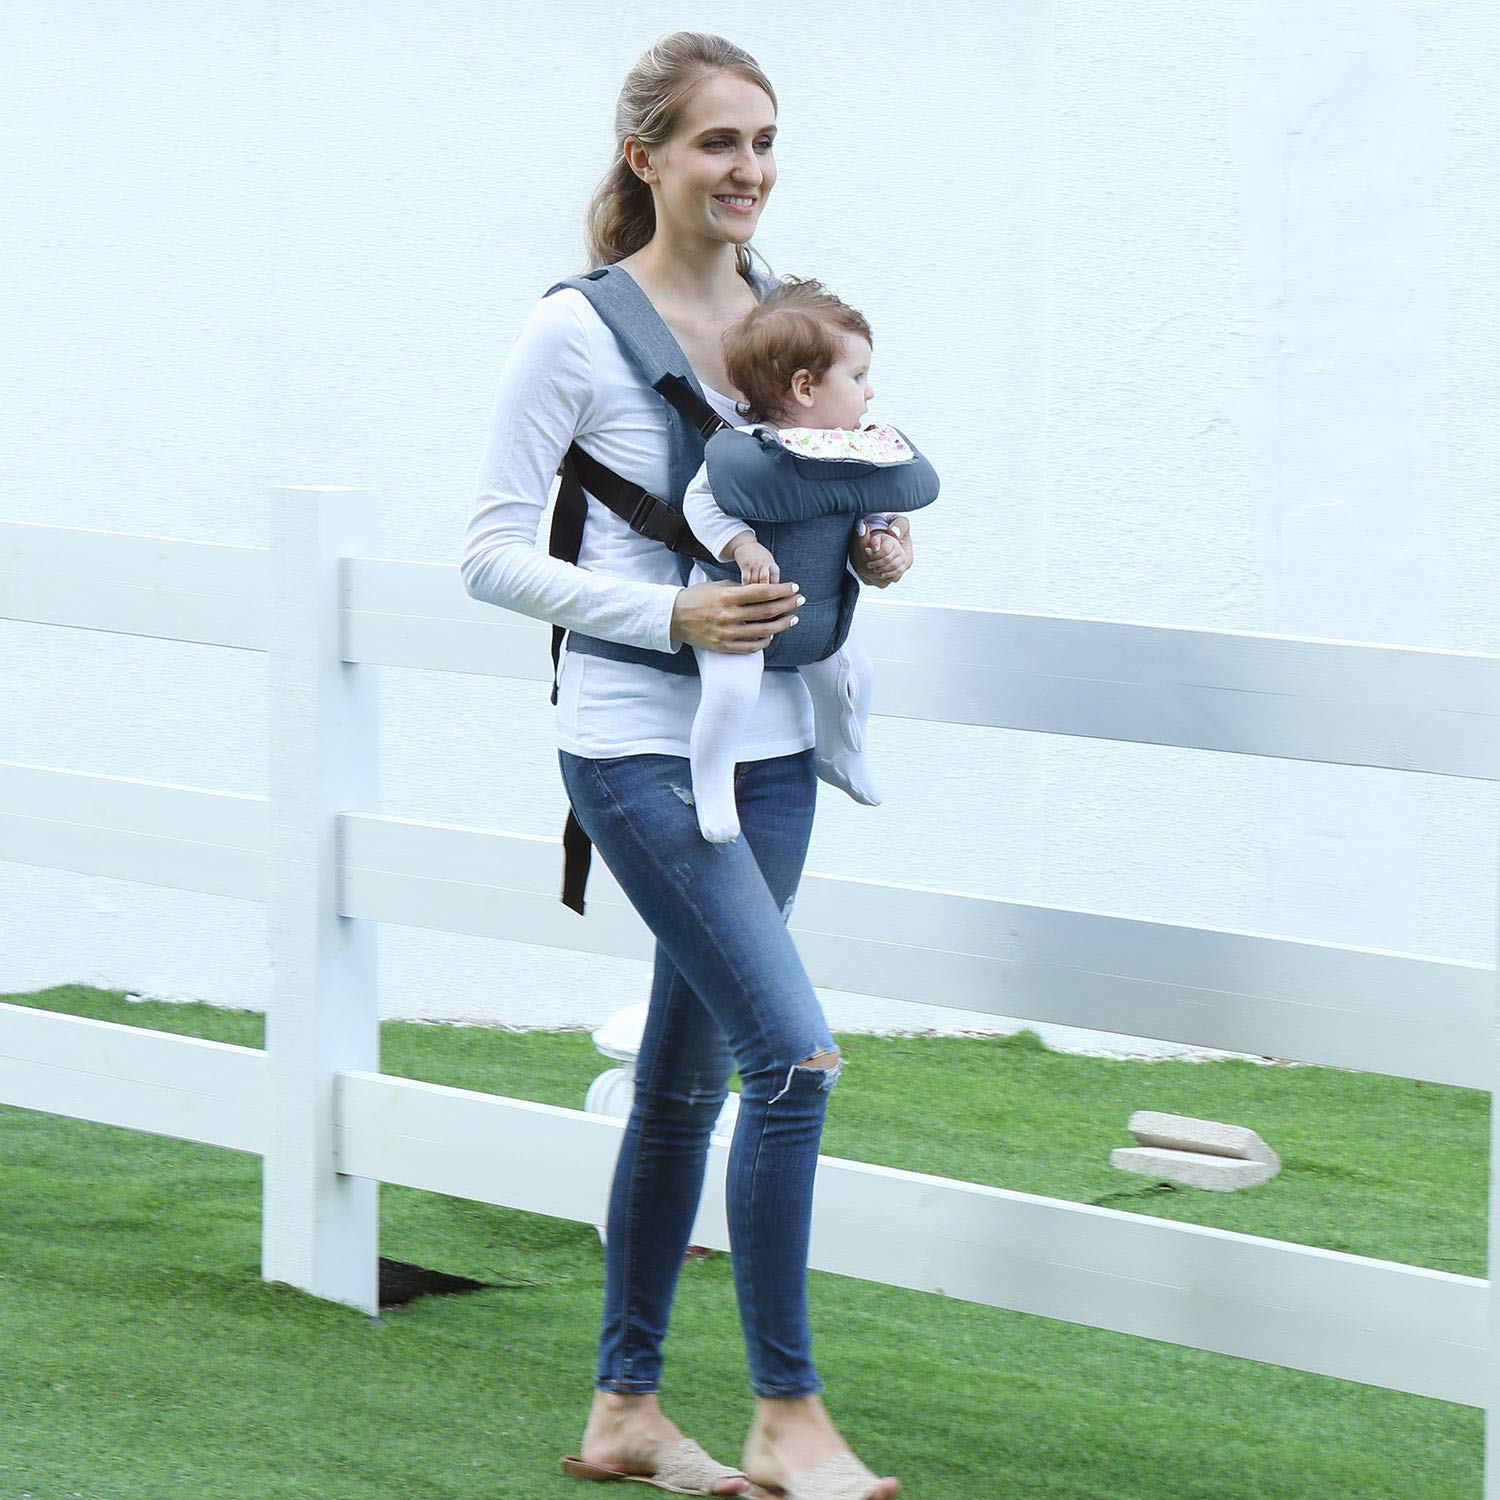 Soft Baby Carrier 4-in-1 Ergonomic Convertible Carrier with Adjustable Straps and Breathable Mesh Dad Baby Carrier Blue